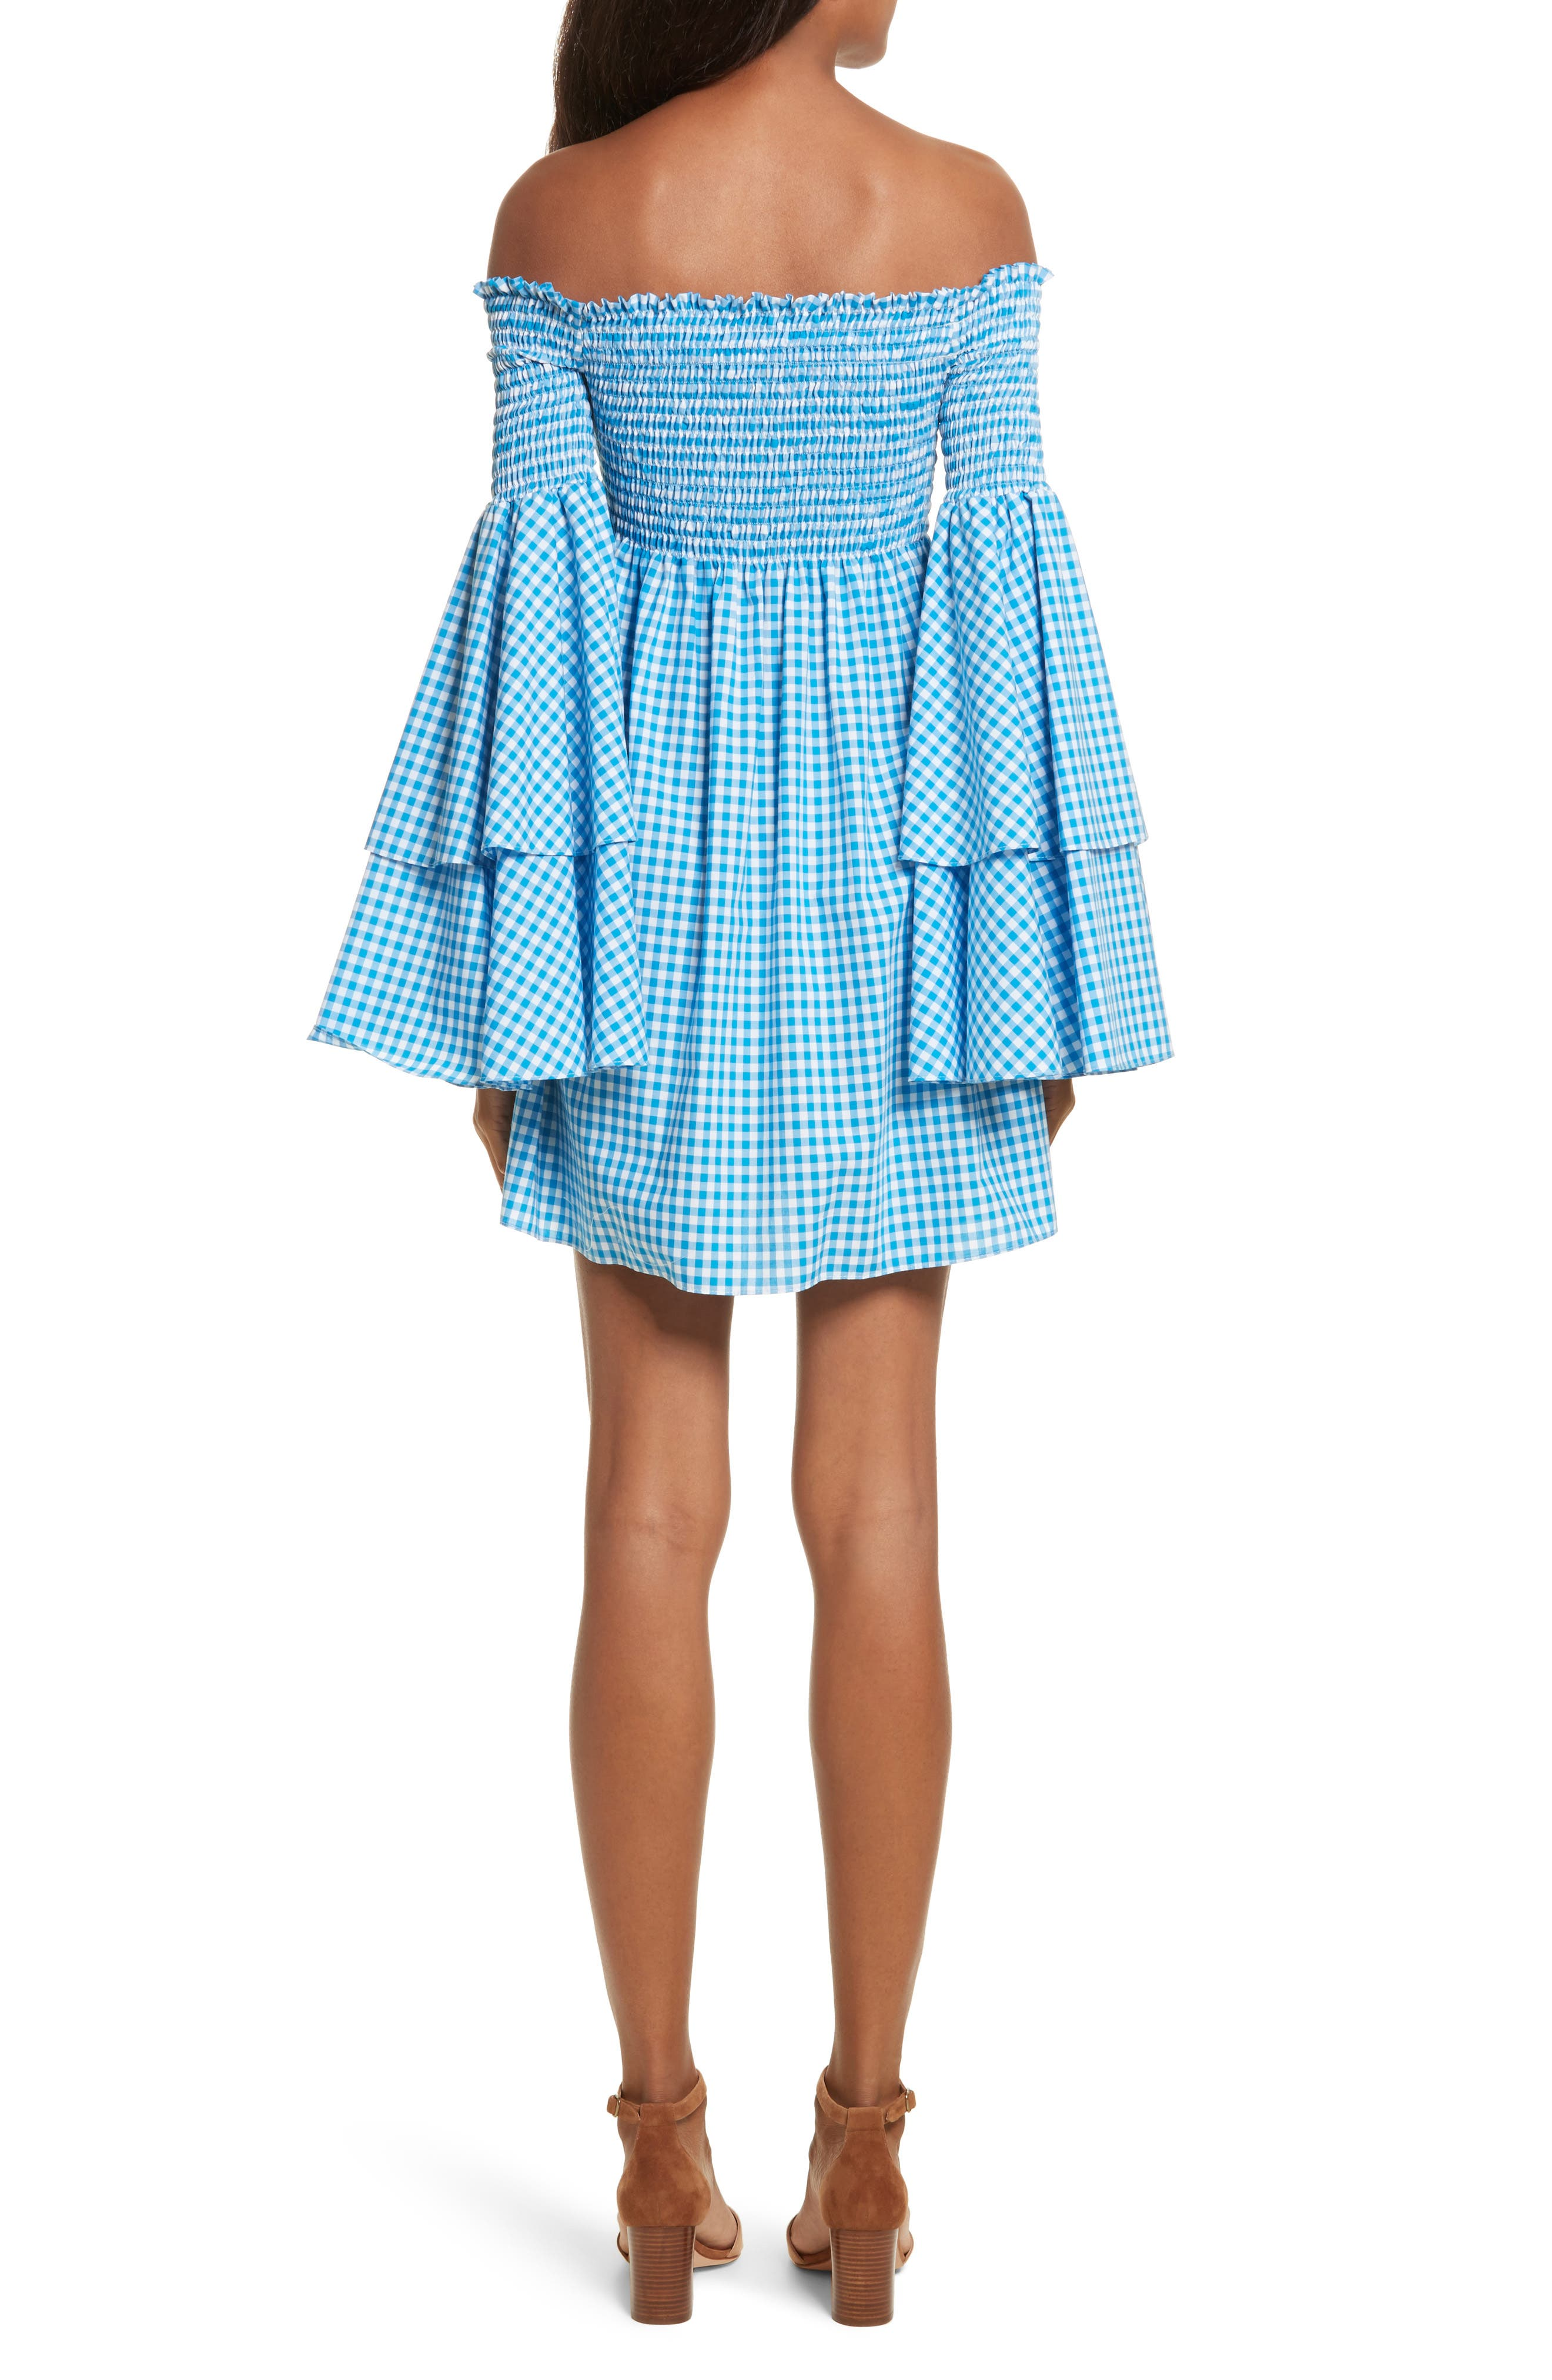 Appolonia Gingham Off the Shoulder Dress,                             Alternate thumbnail 2, color,                             Turquoise